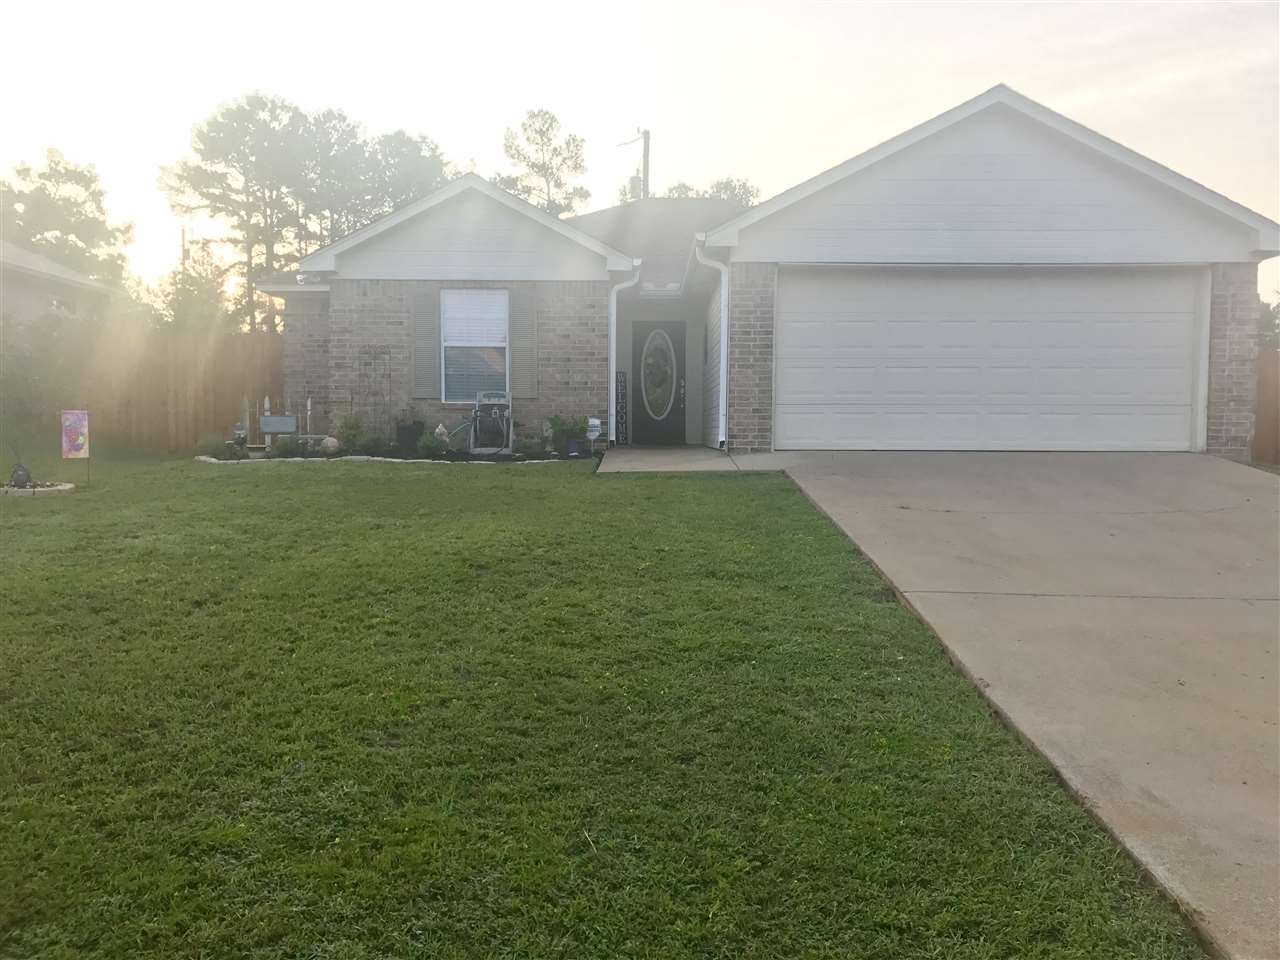 New Price! This beautiful home sits on a corner lot with lots of updates. New carpeting, new kitchen appliances, new paint thru out, new privacy fence, back patio area, and a  storage building. Don't miss out on this one it will not last long. Call to schedule your appointment today 903-238-1052